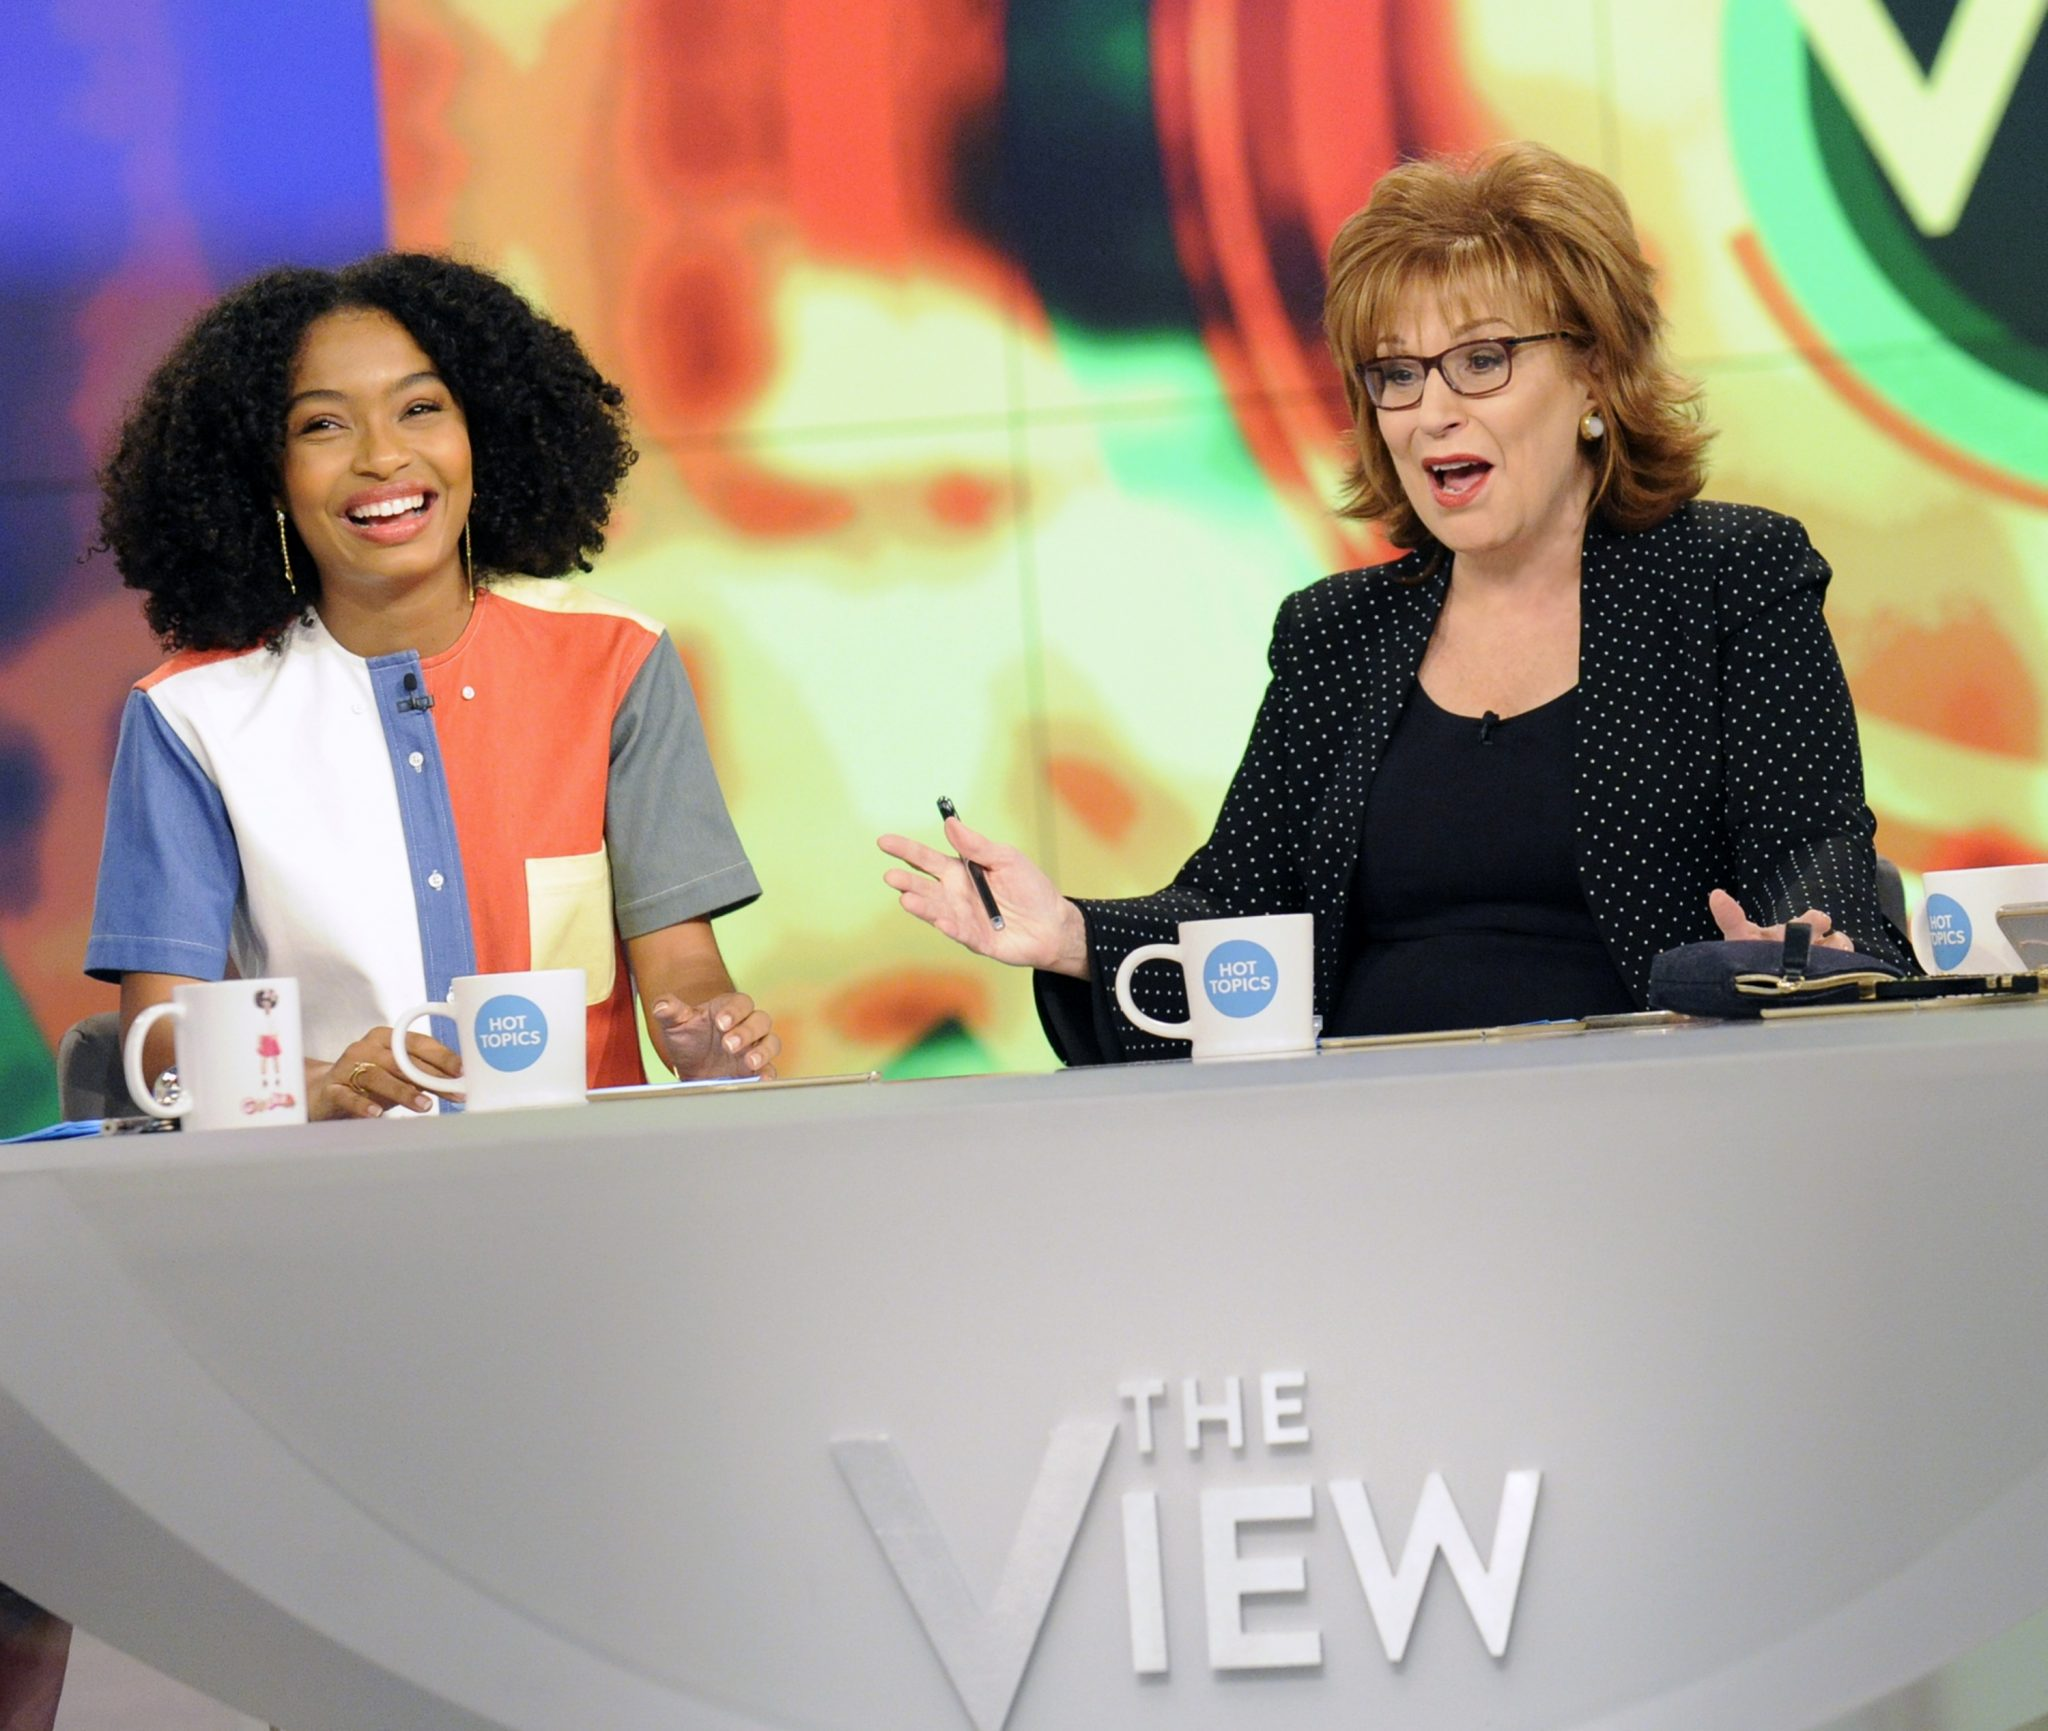 Meghan Mccain Raven: In Case You Missed It: Yara Shahidi On The View